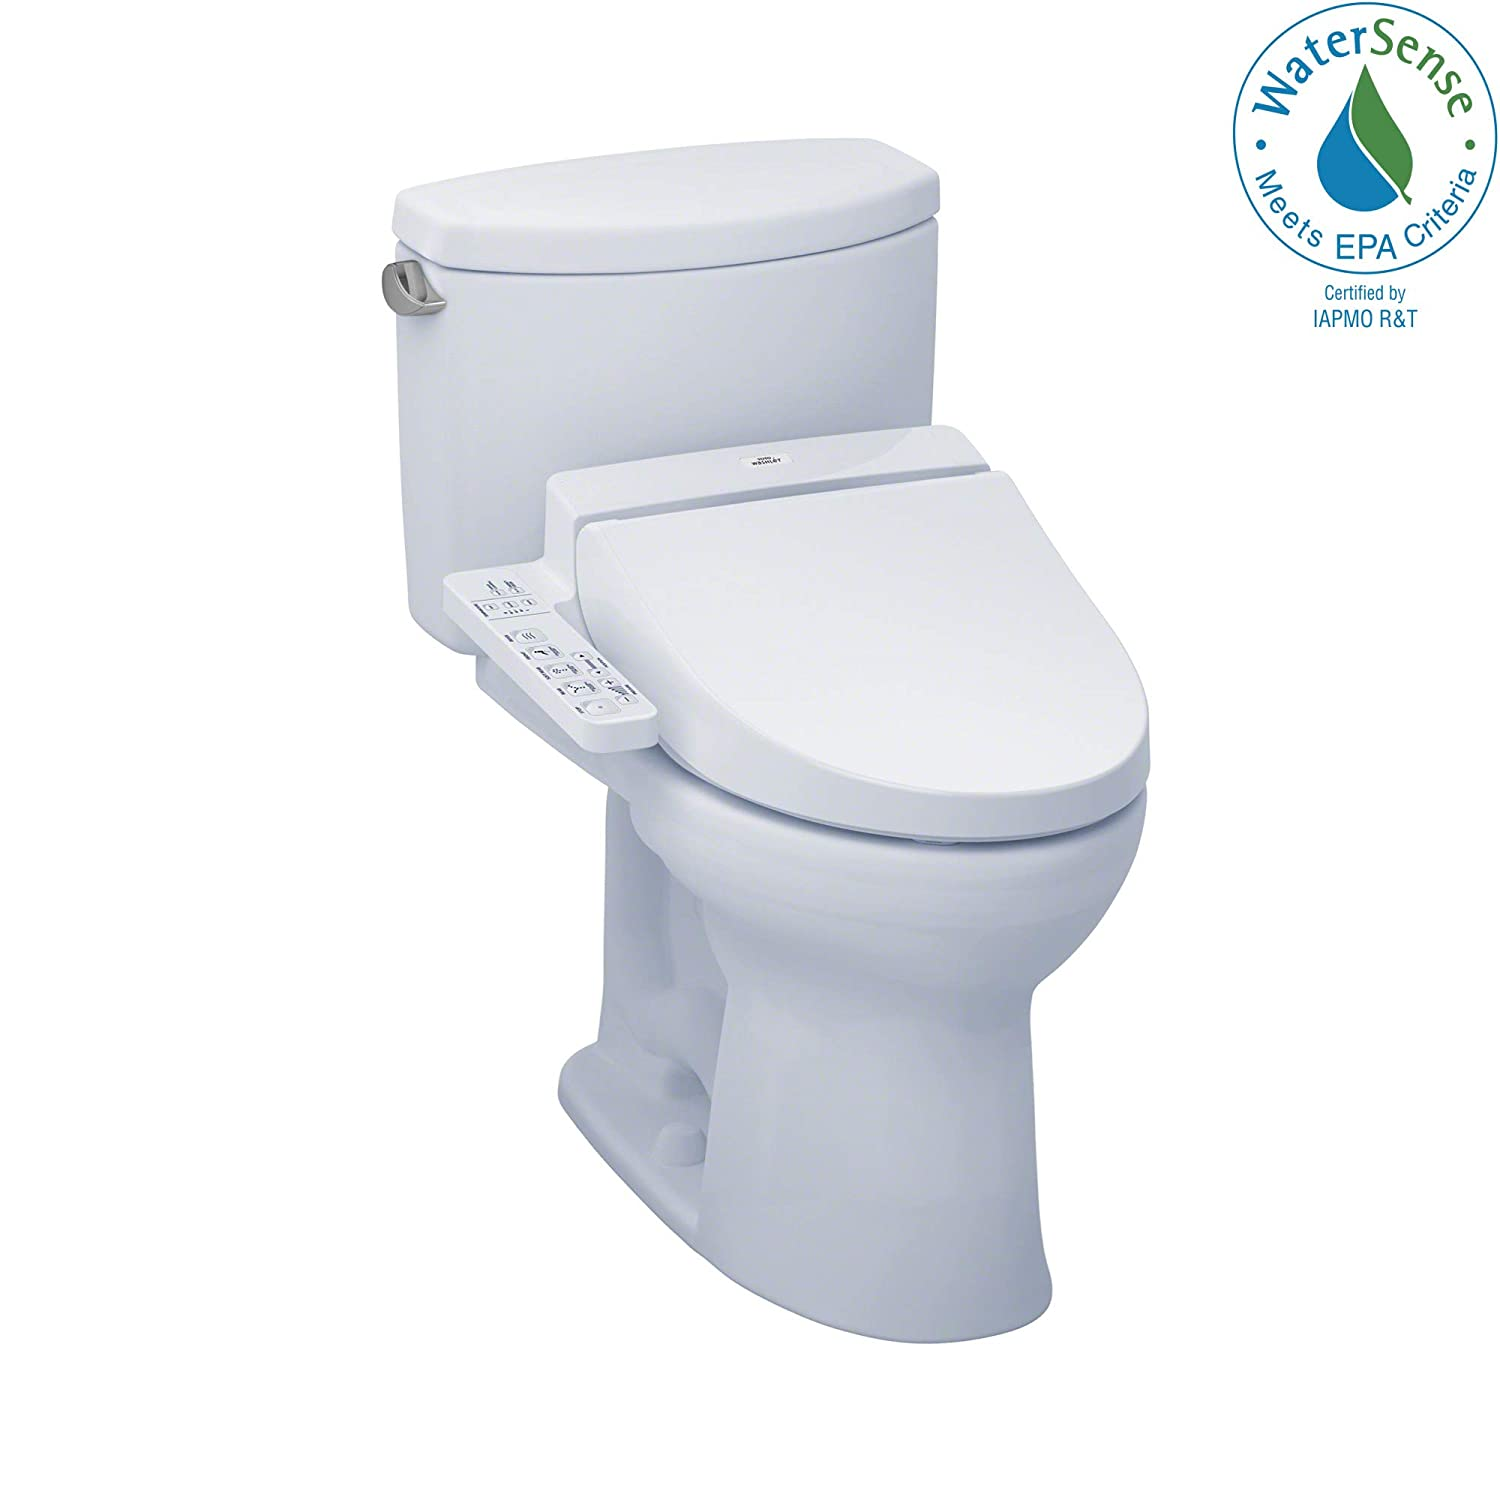 TOTO MW4542034CEFG#01 C100 WASHLET+ Kit, Drake II Elongated 1.28 GPF